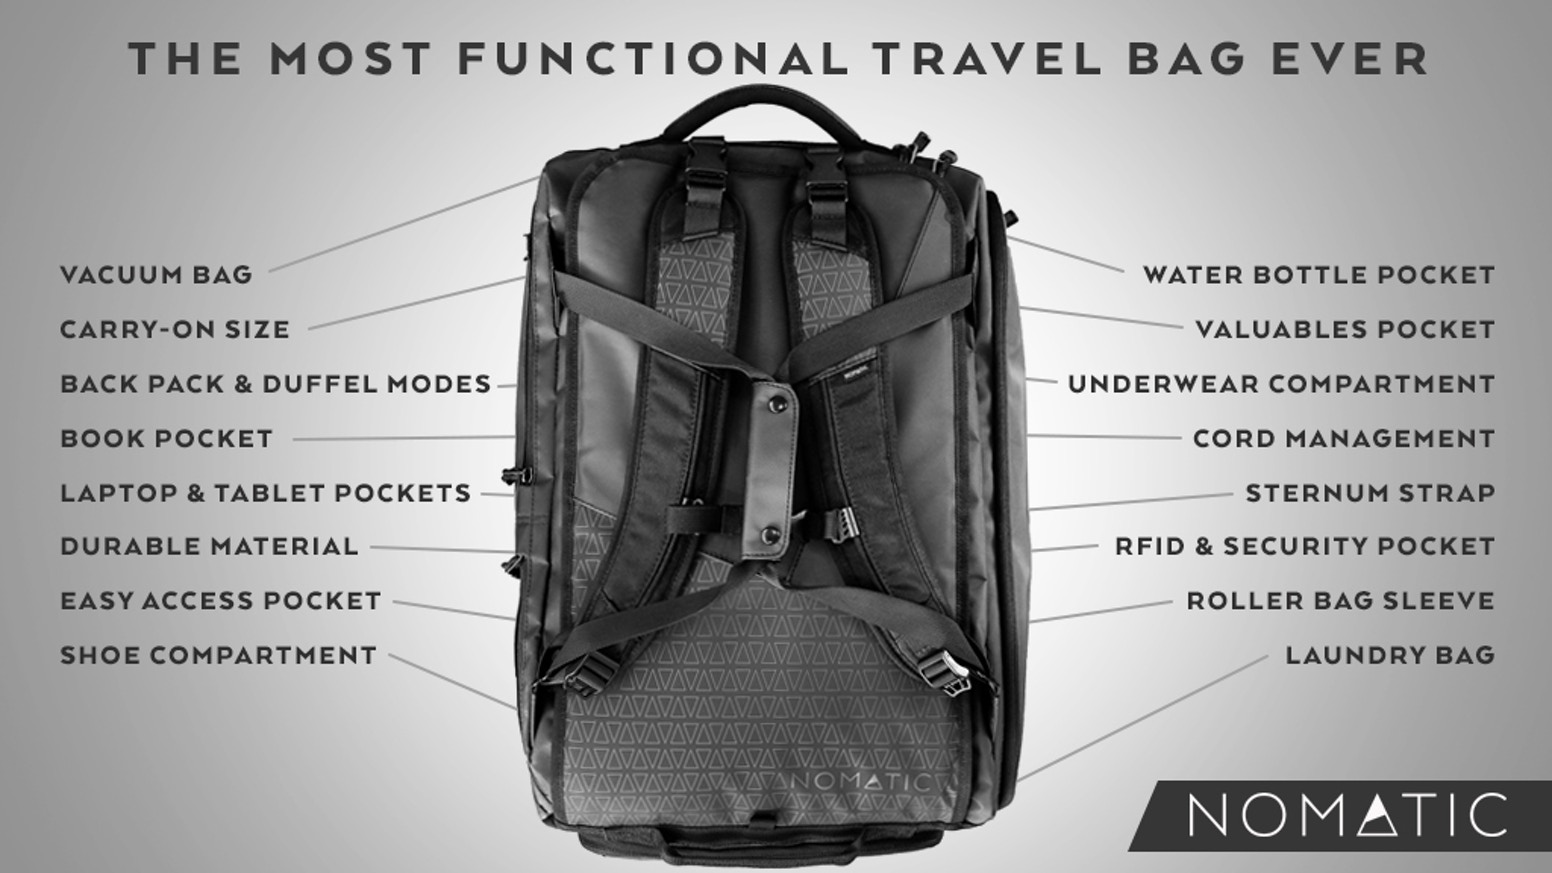 a1e4dad5411f The NOMATIC Travel Bag  The Most Functional Travel Bag Ever!